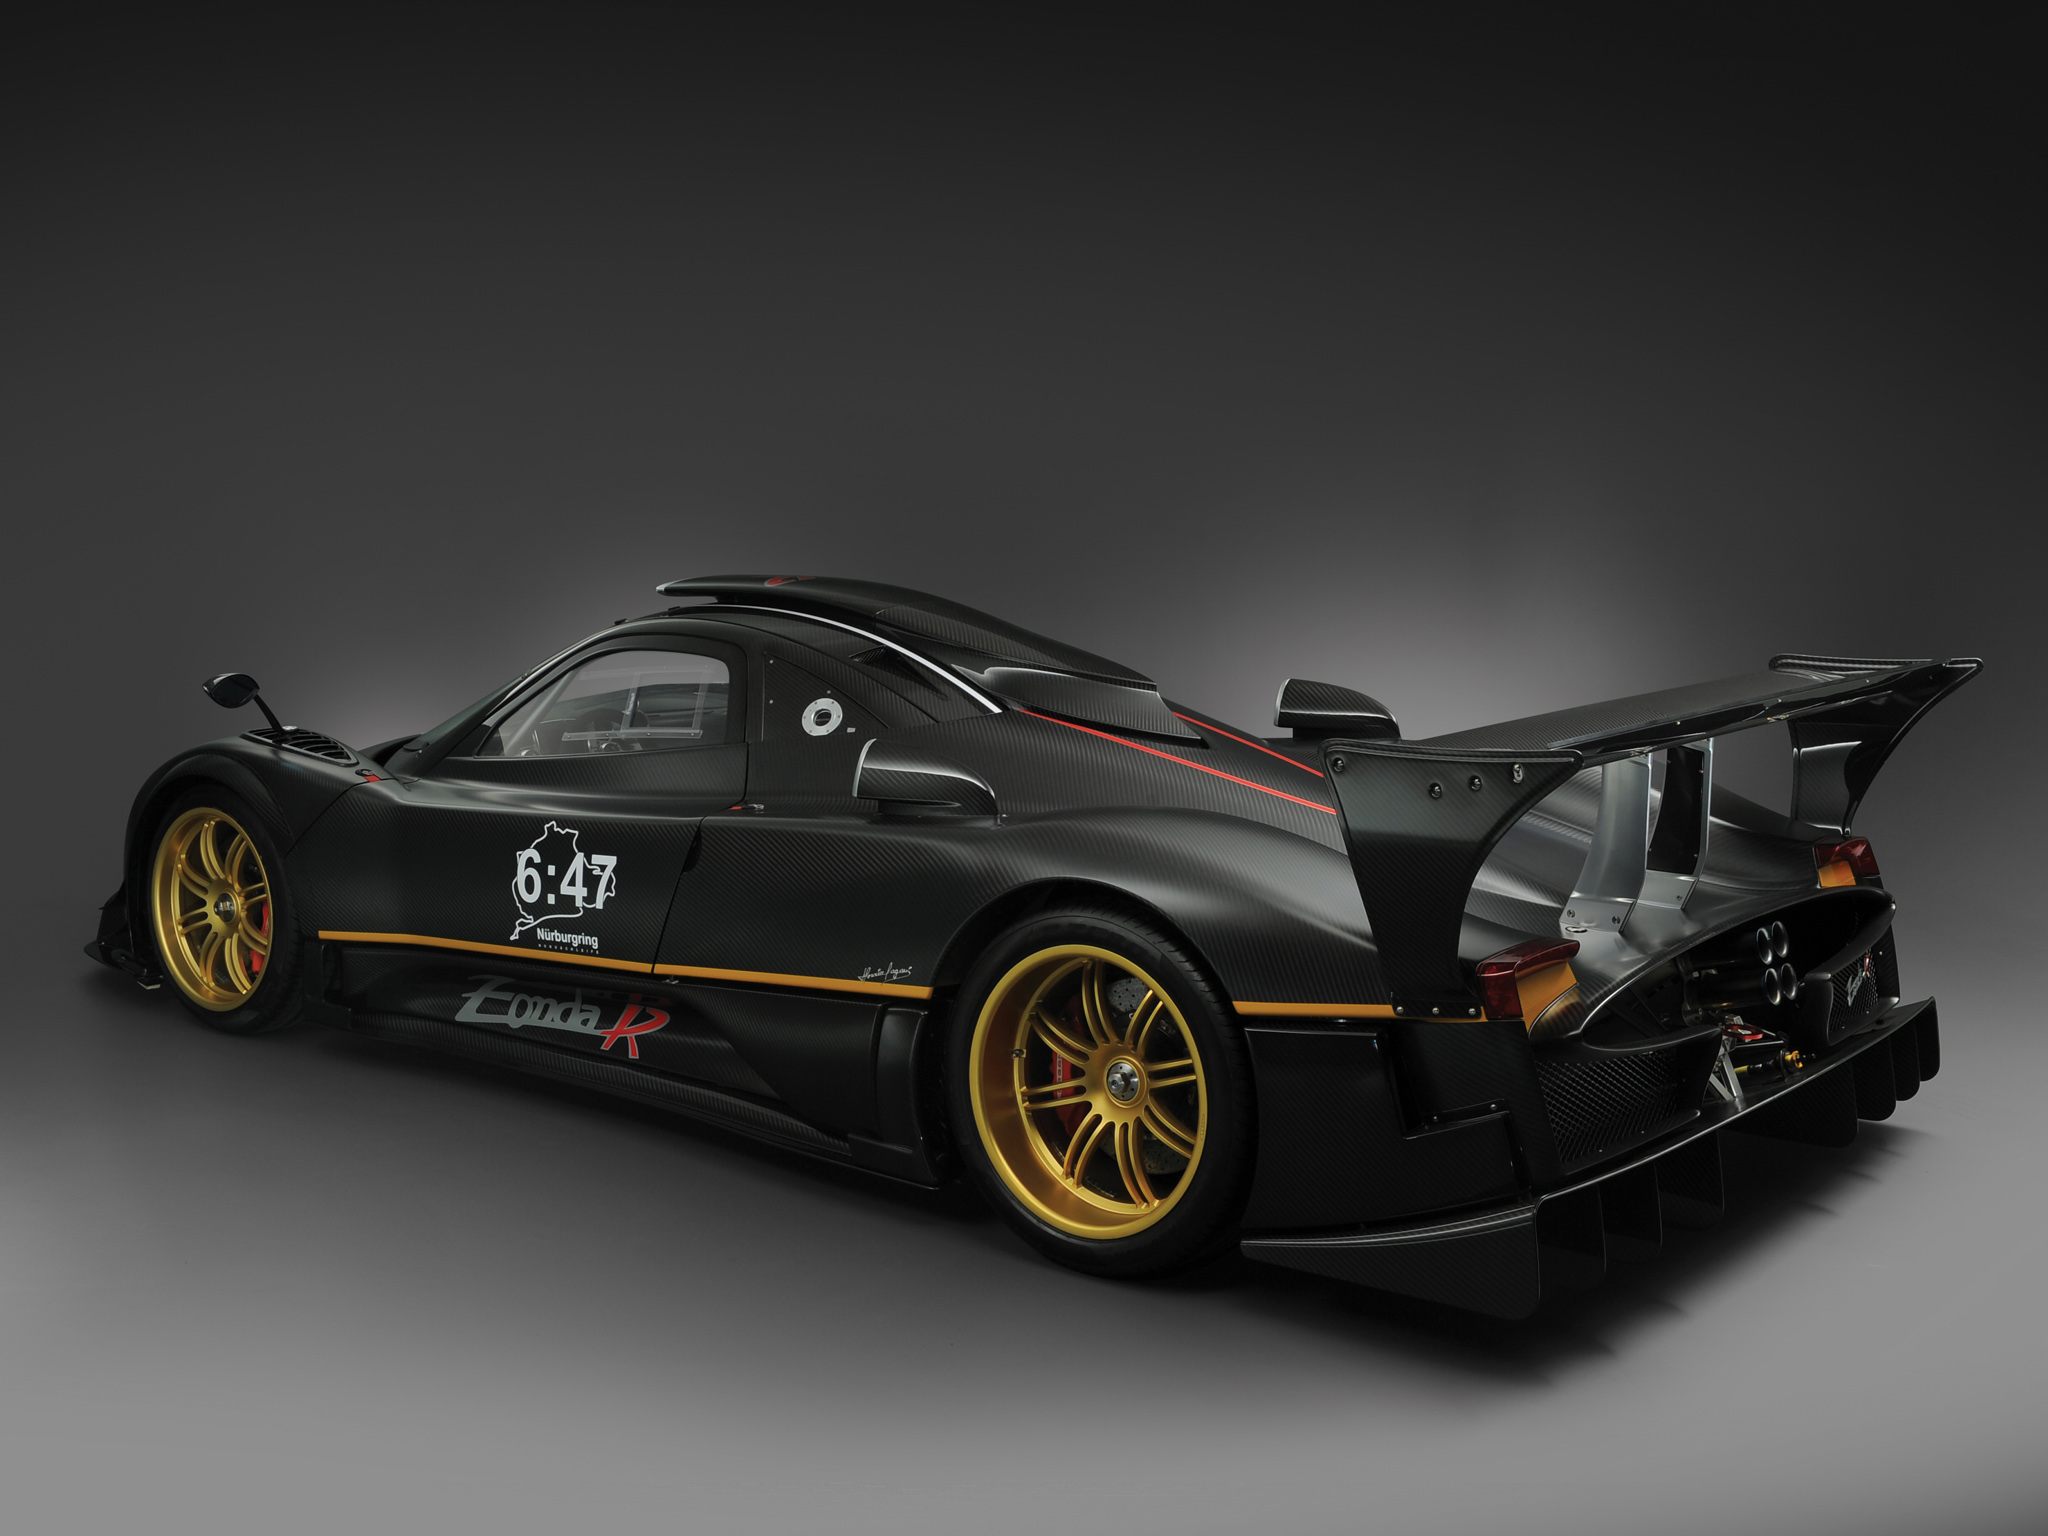 Superb Pagani Zonda Wallpaper